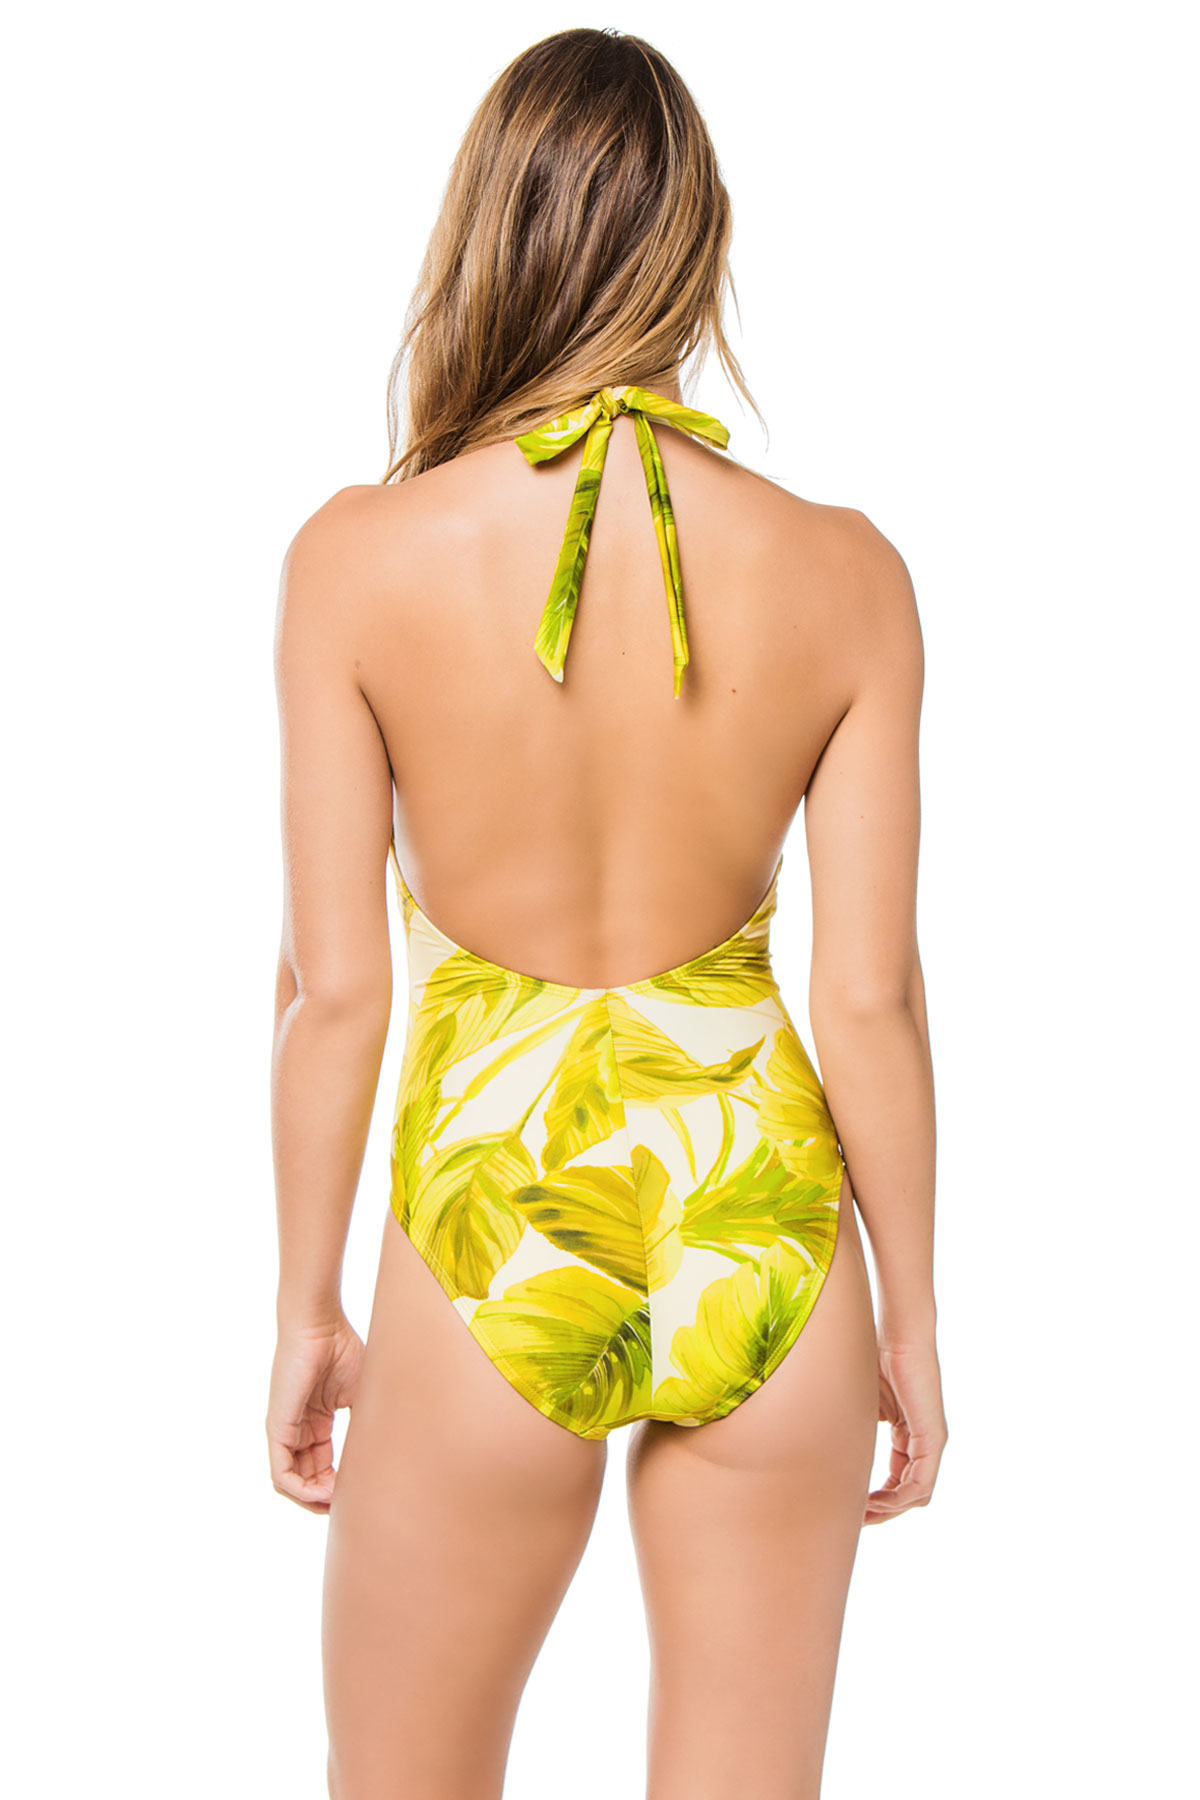 Plunge Halter One Piece Swimsuit - Yellow Multi 2